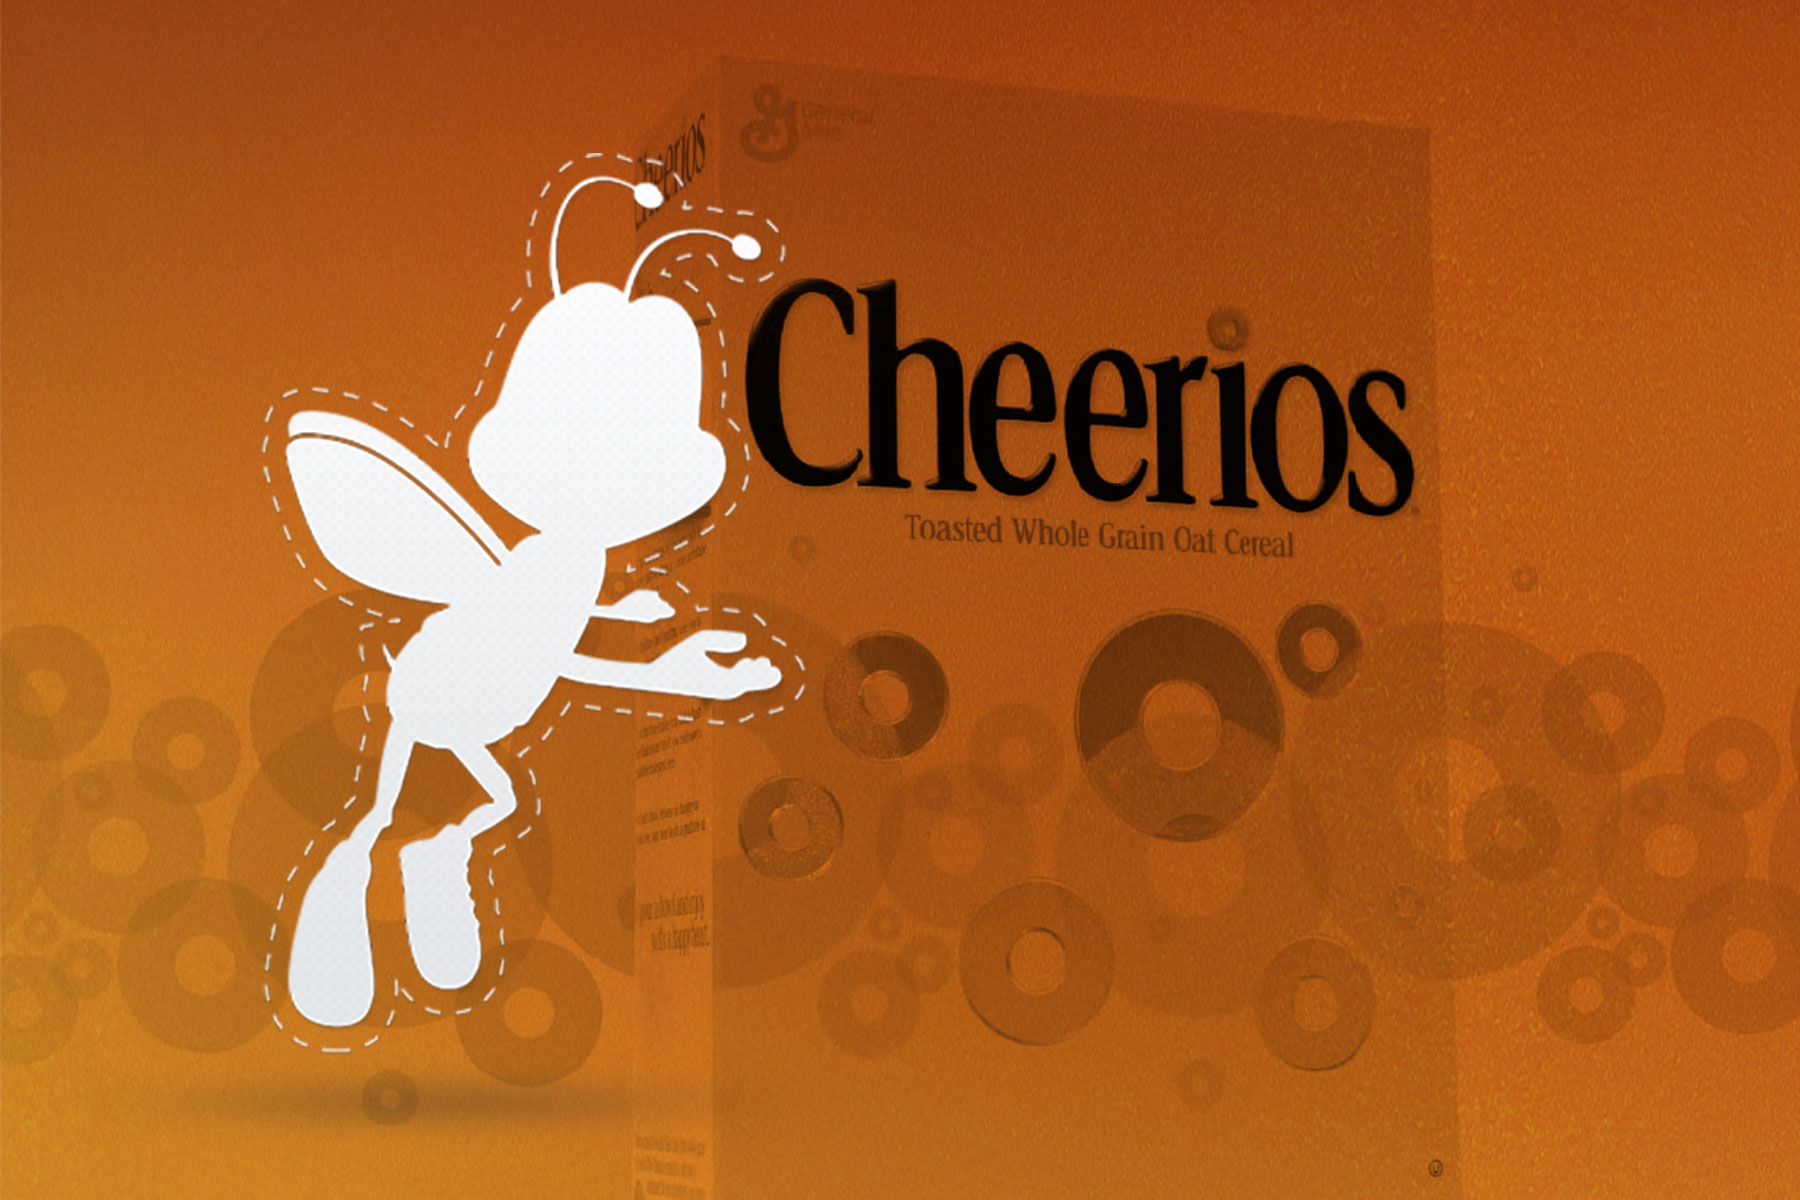 Cheerios Seeds: Bees Need Help, So Cereal Maker Giving Away Free Flowers